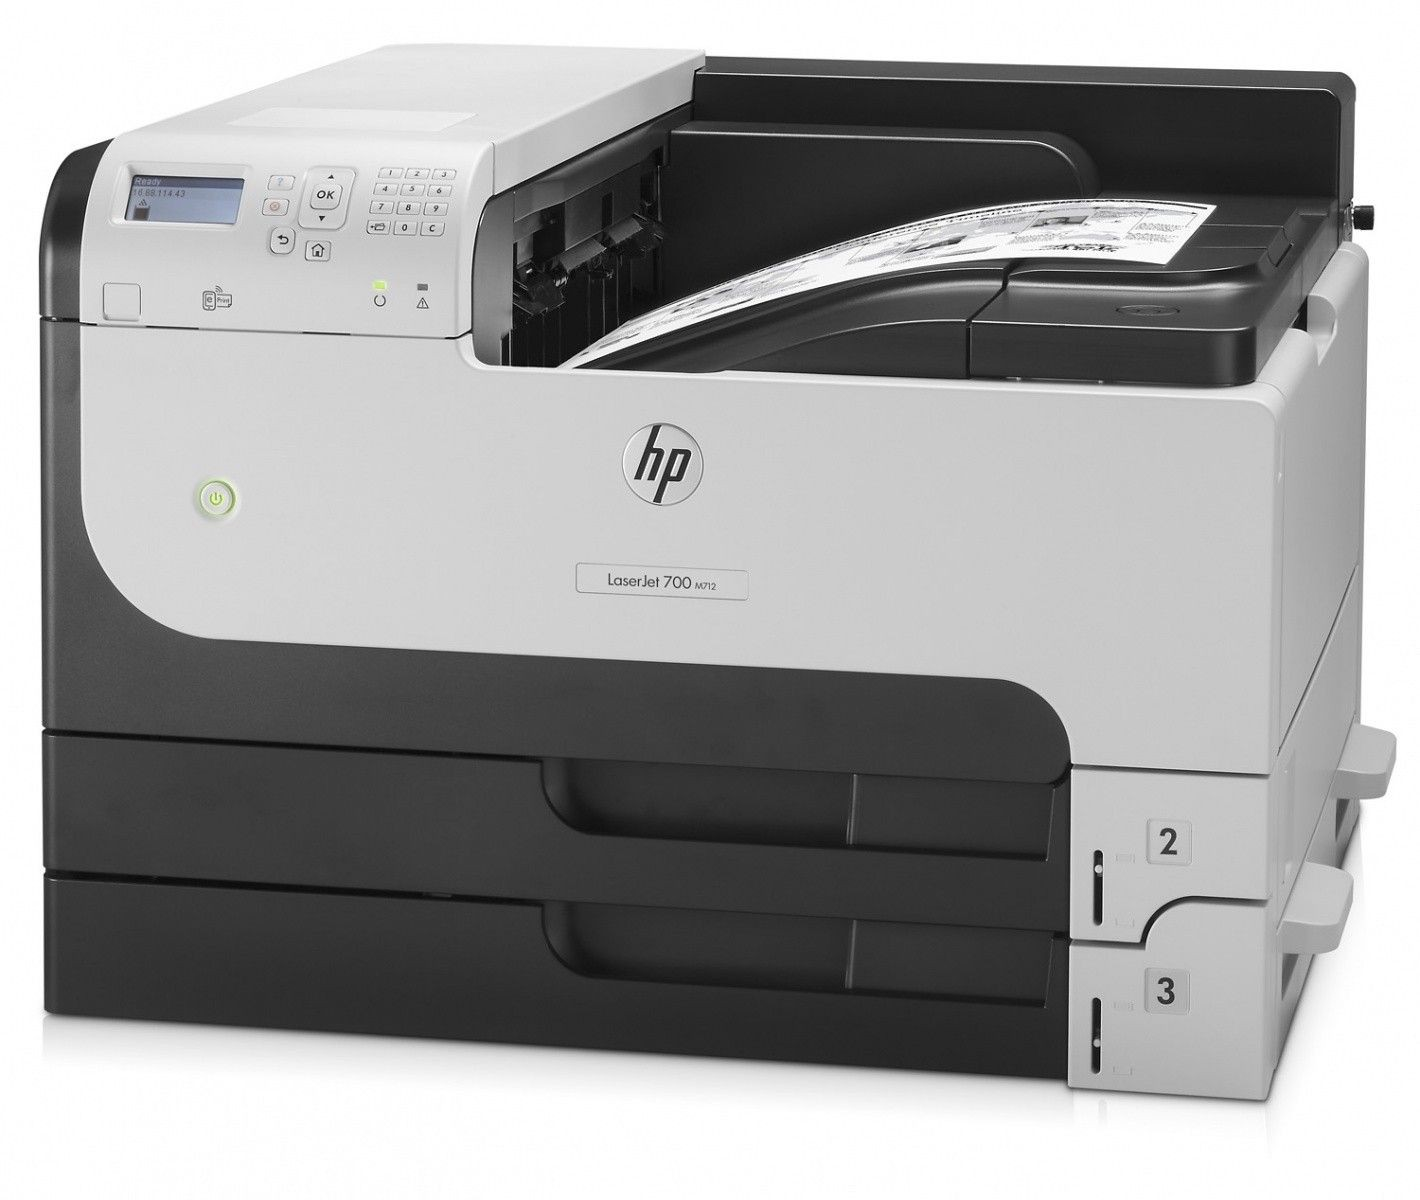 HP LaserJet Enterprise 700 M712dn (A3)